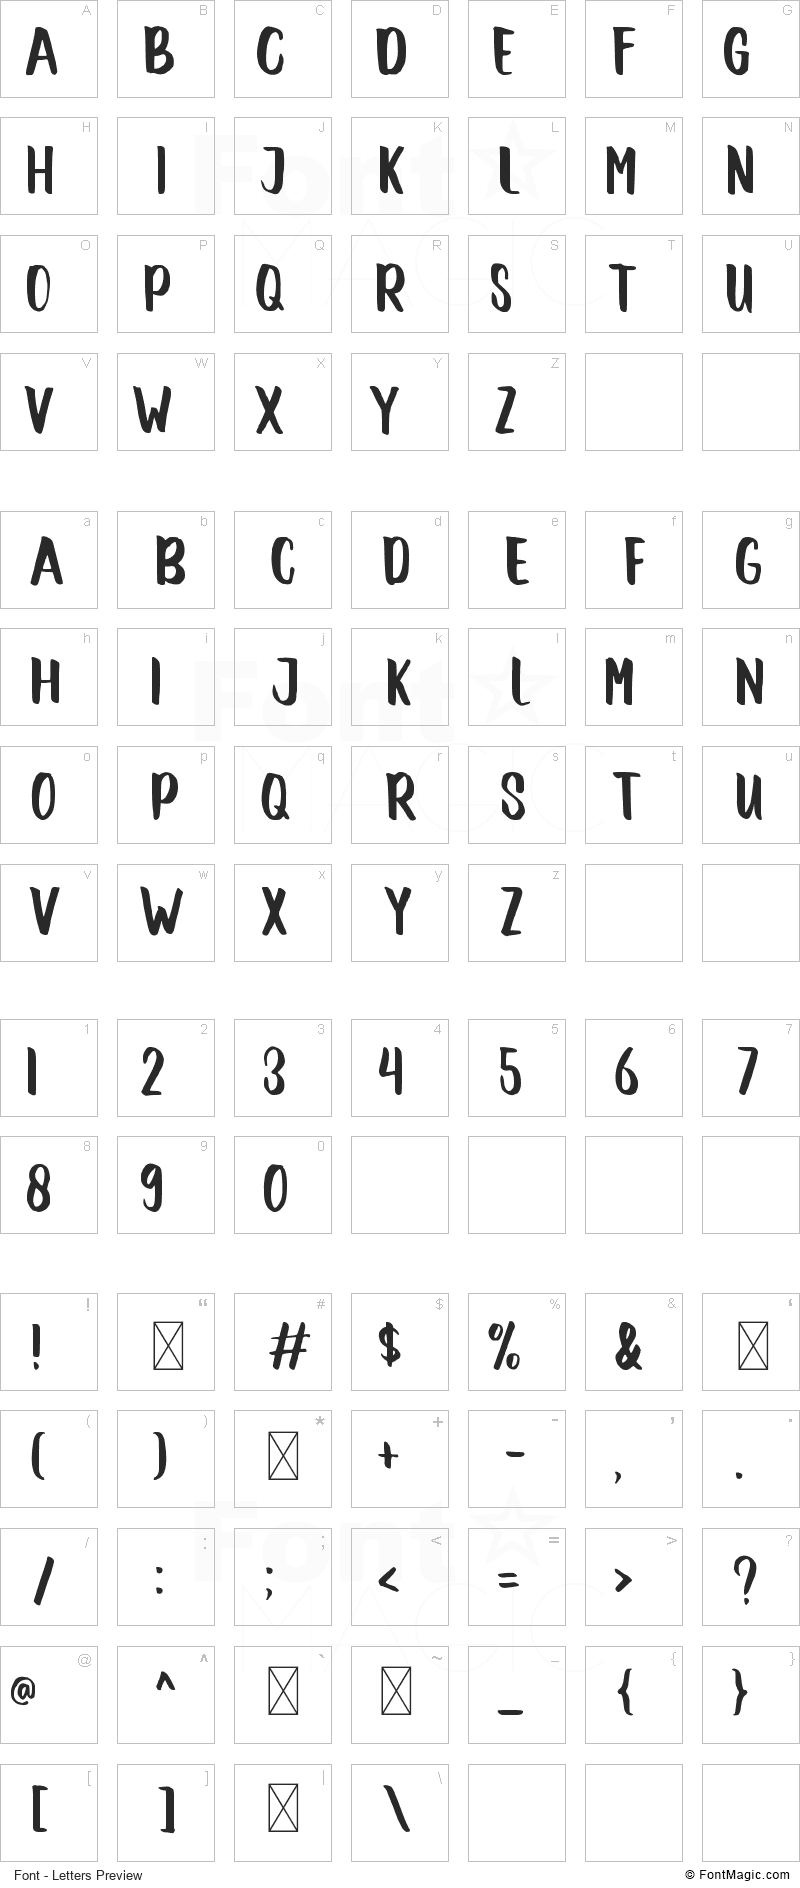 Winter Font - All Latters Preview Chart